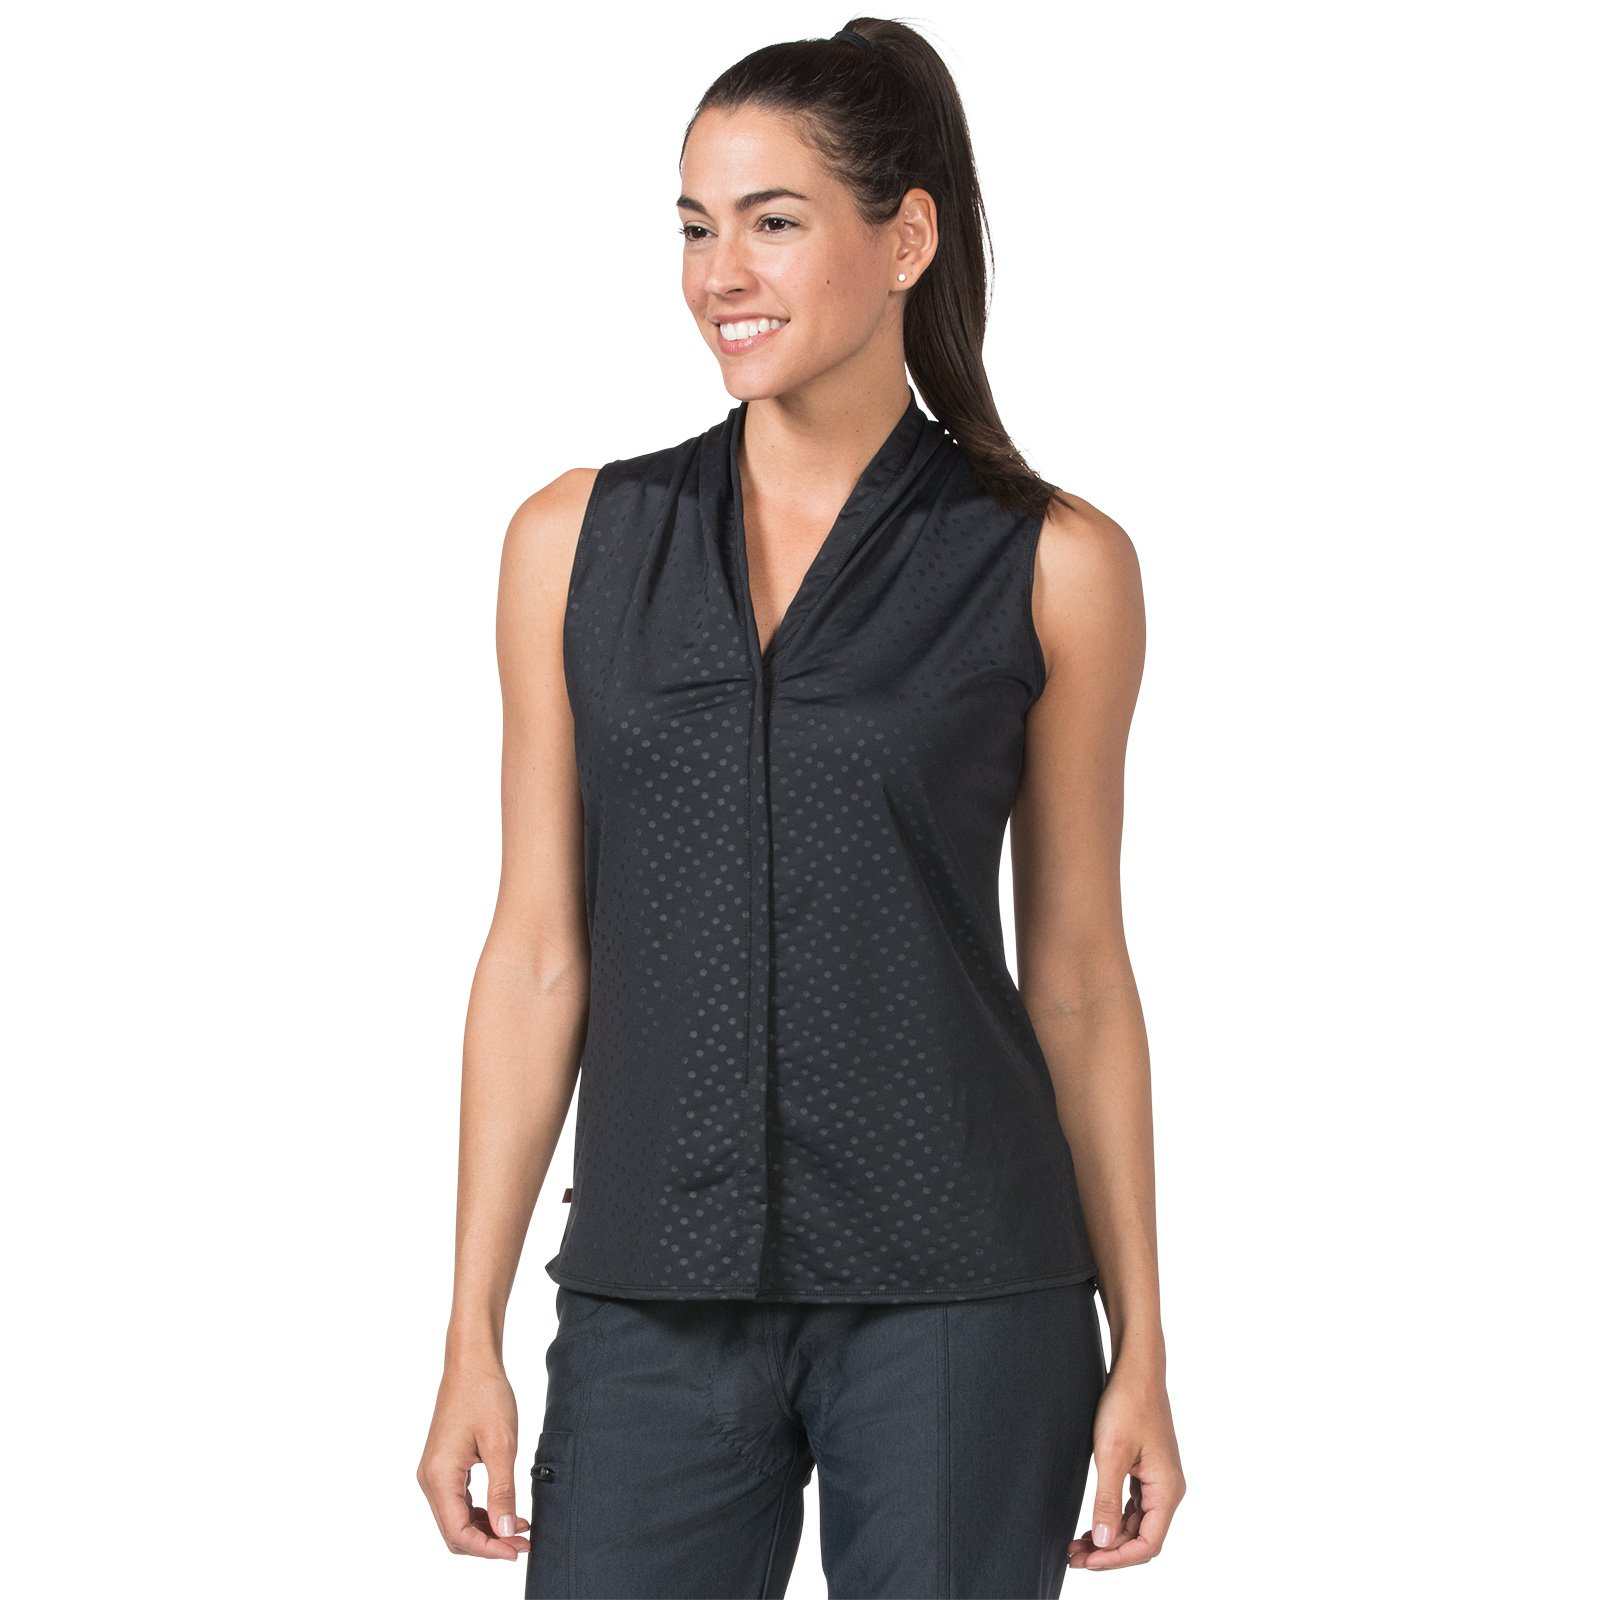 Terry Women's Transit Top, The Prefect Everyday Sleeveless Athletic Blouse (Small, Dots) by Terry